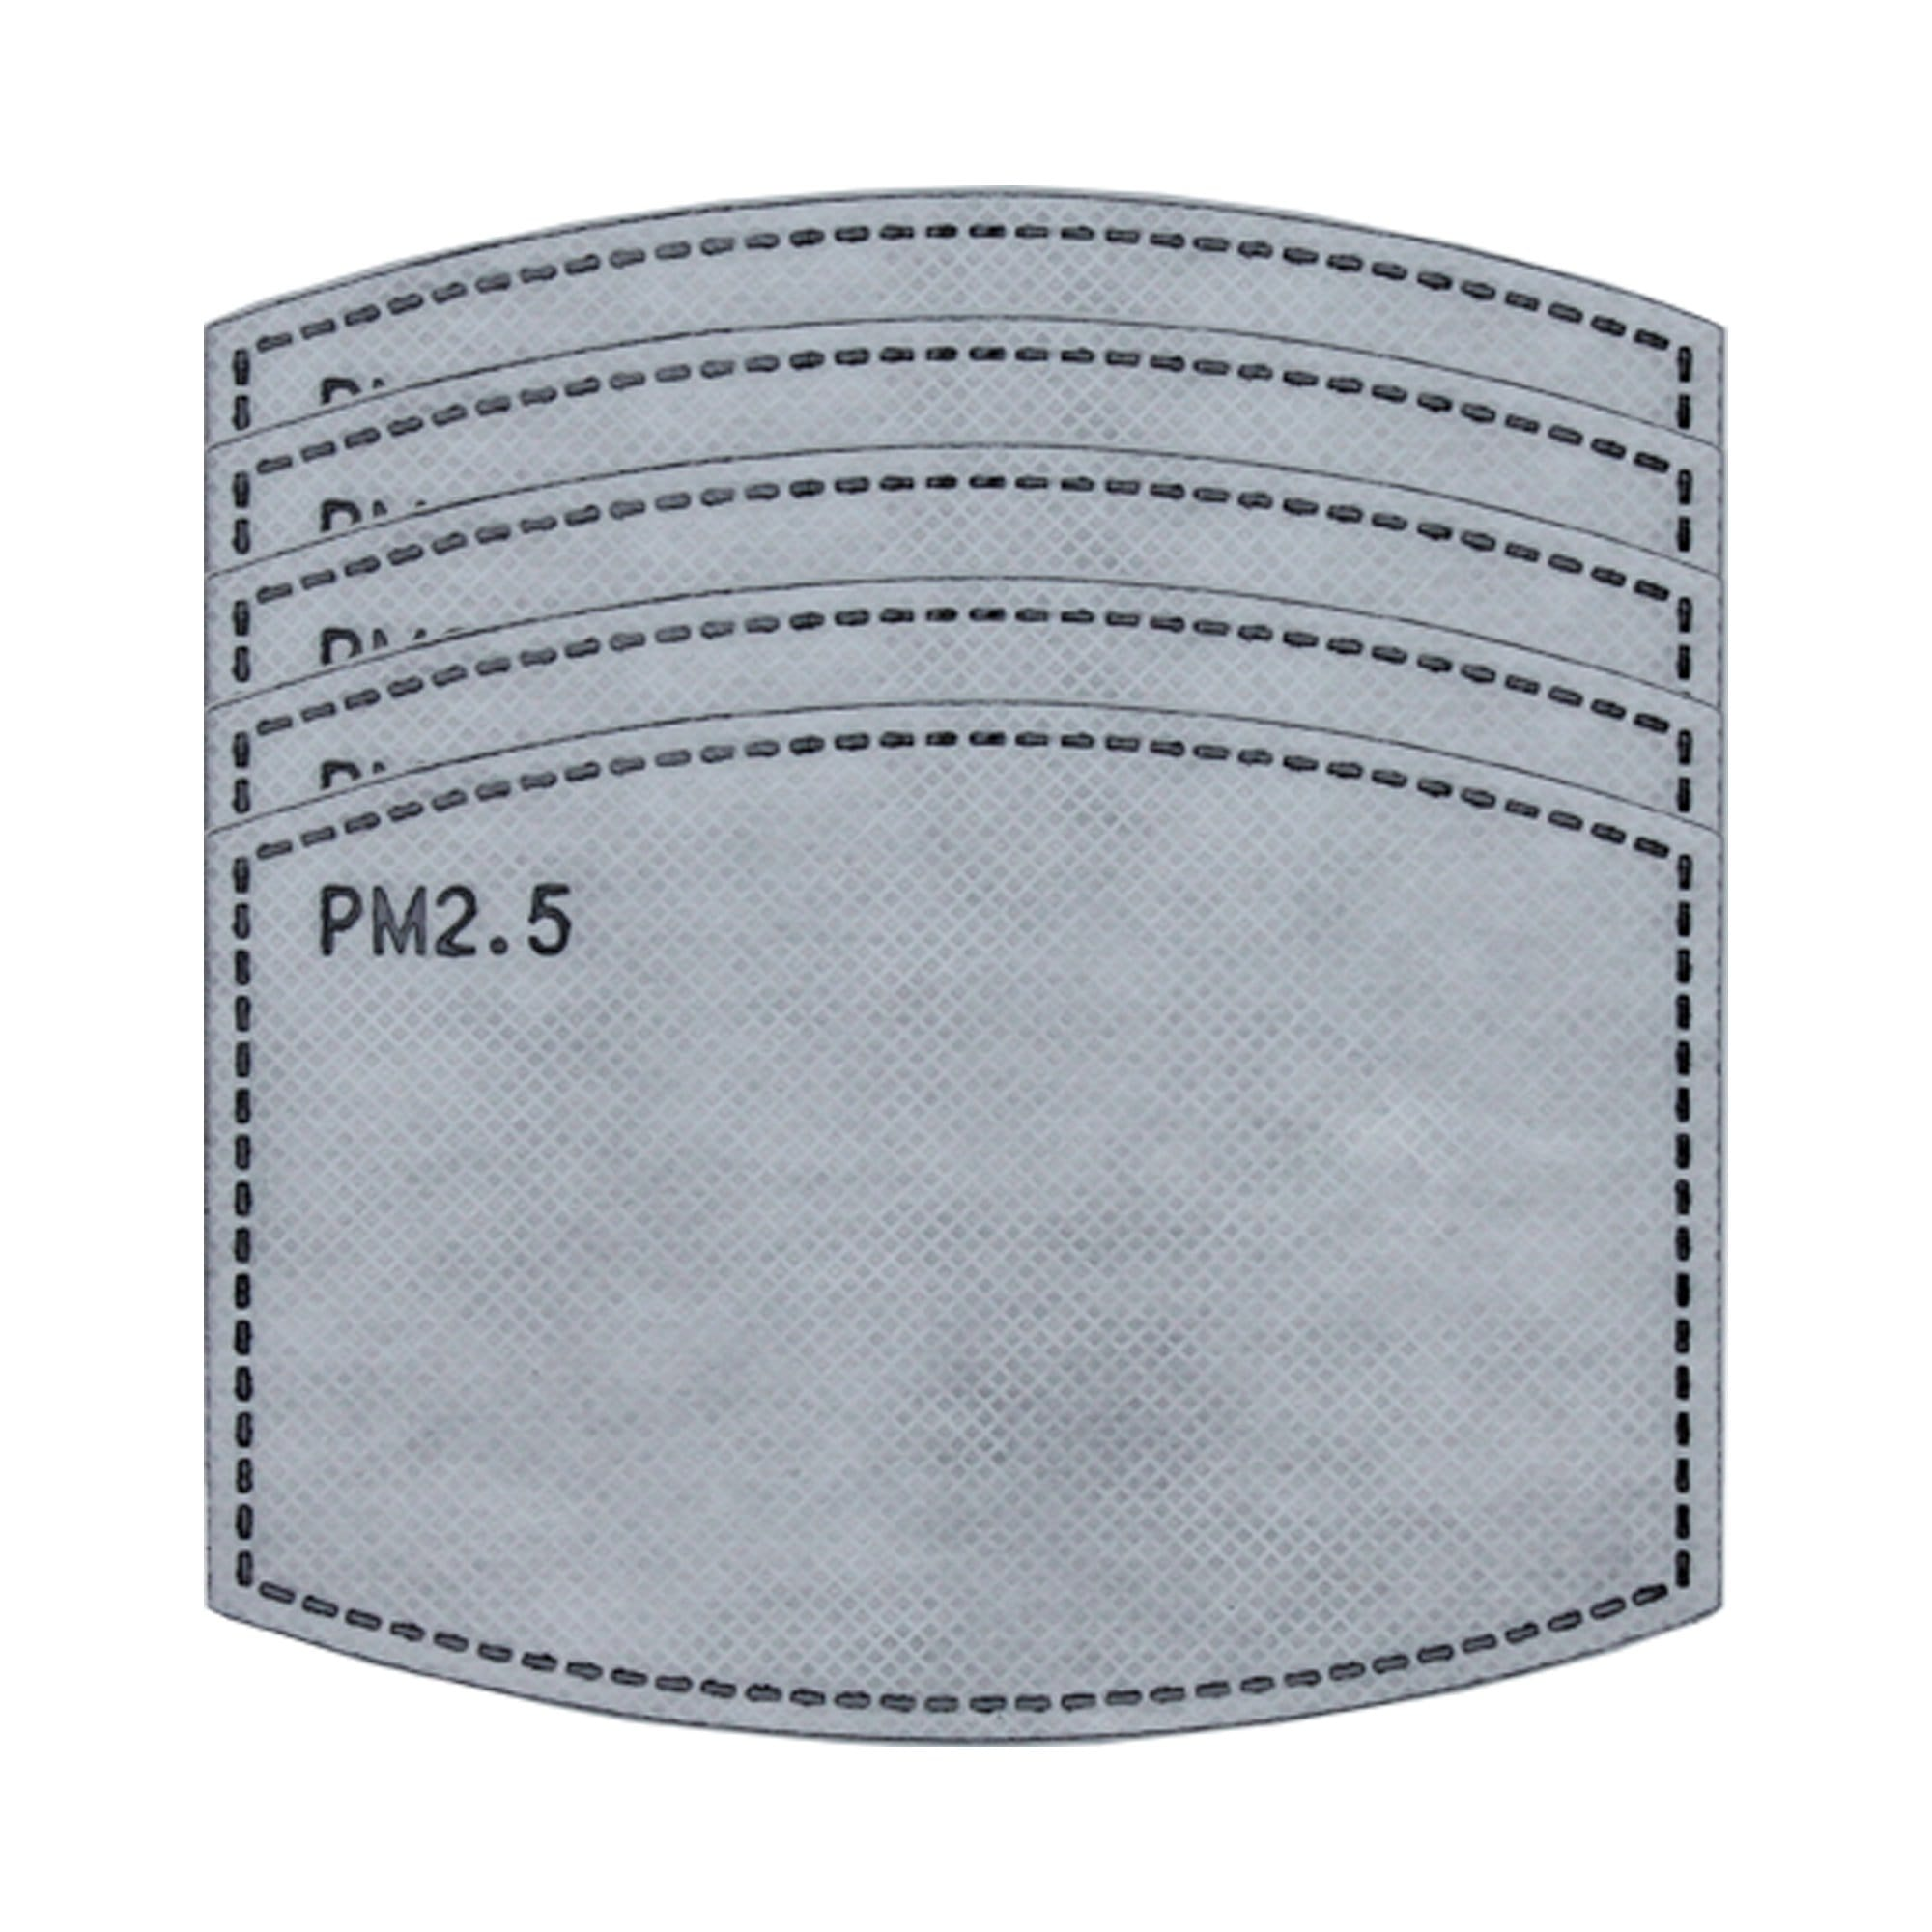 PM2.5 Filter, Individually Wrapped, Pack of 5 - Ready First Aid